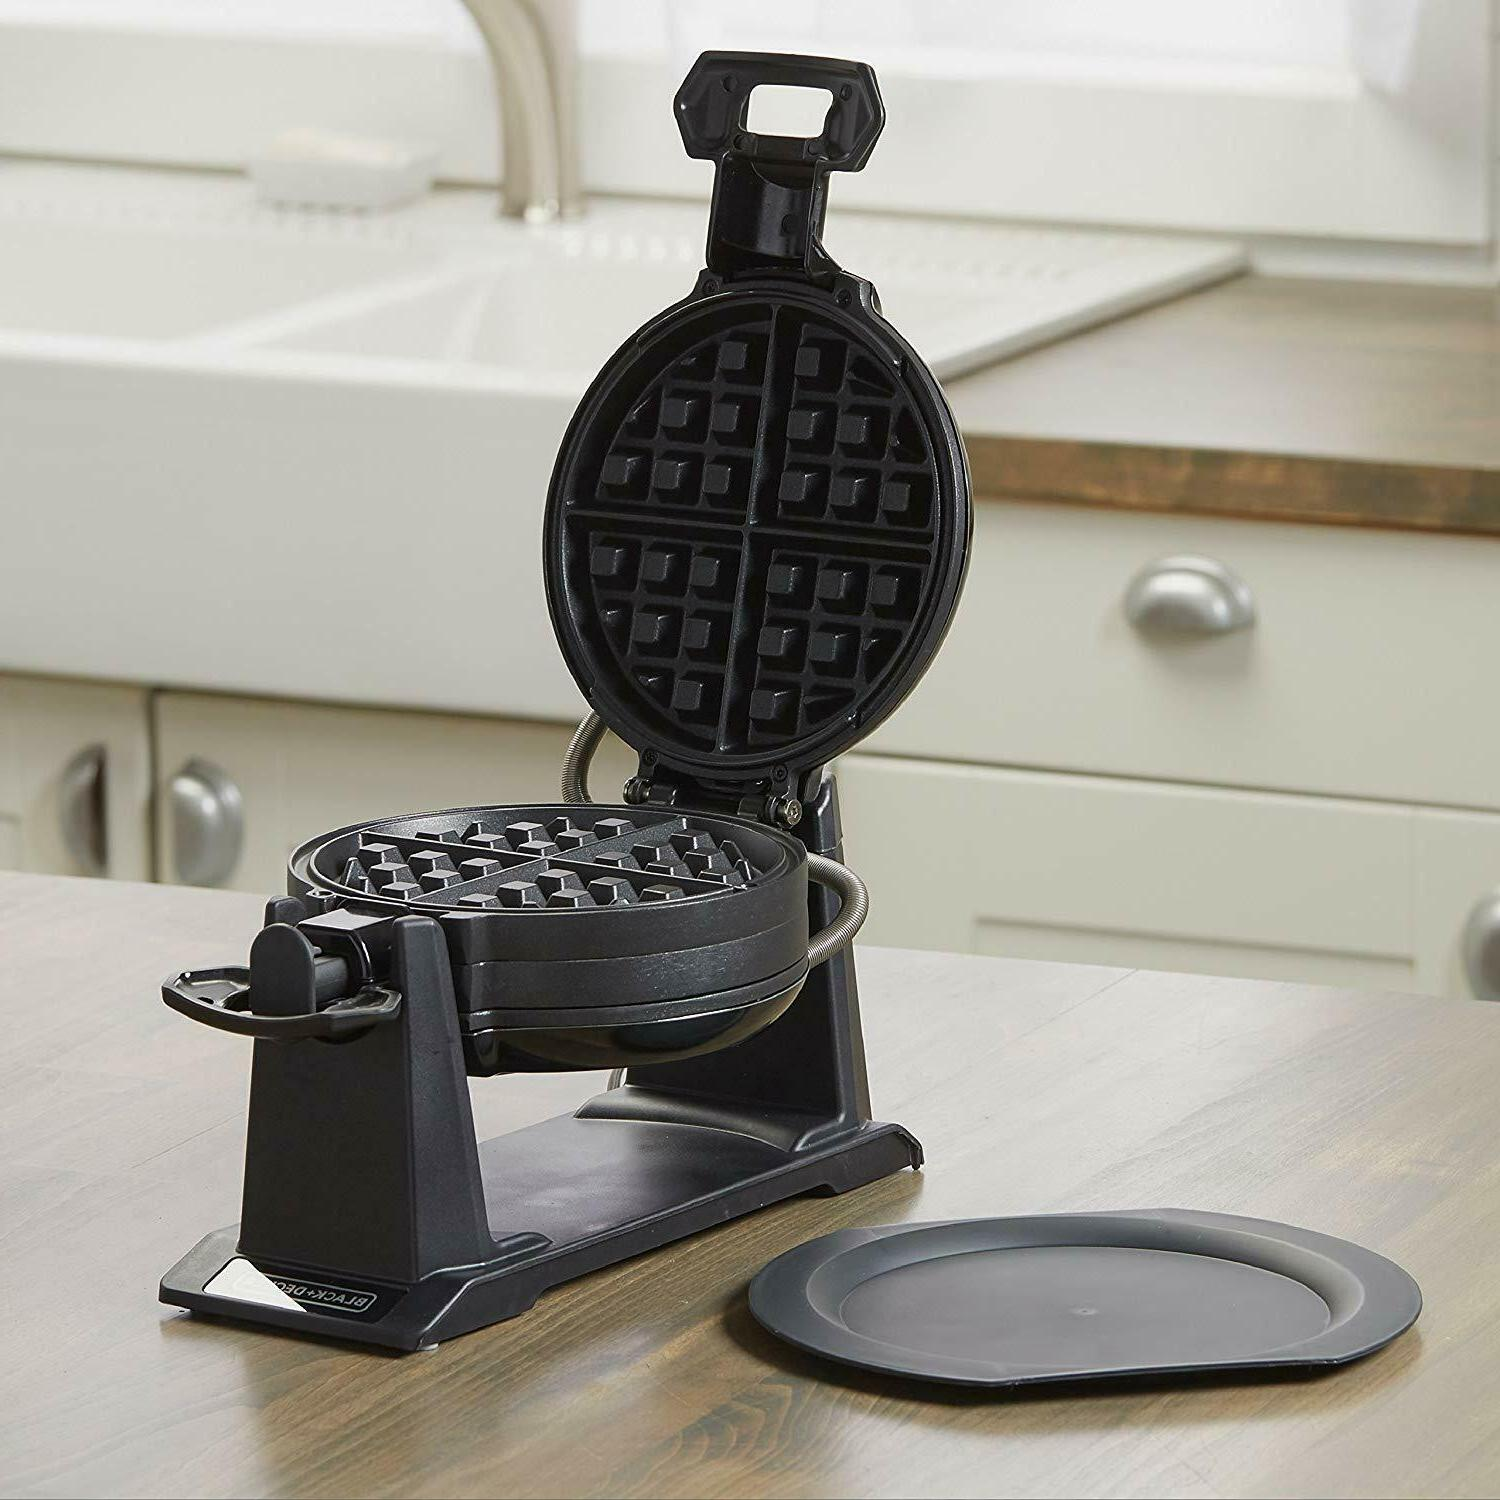 DOUBLE MAKER Rotating Non Stick Cook Round Waffles